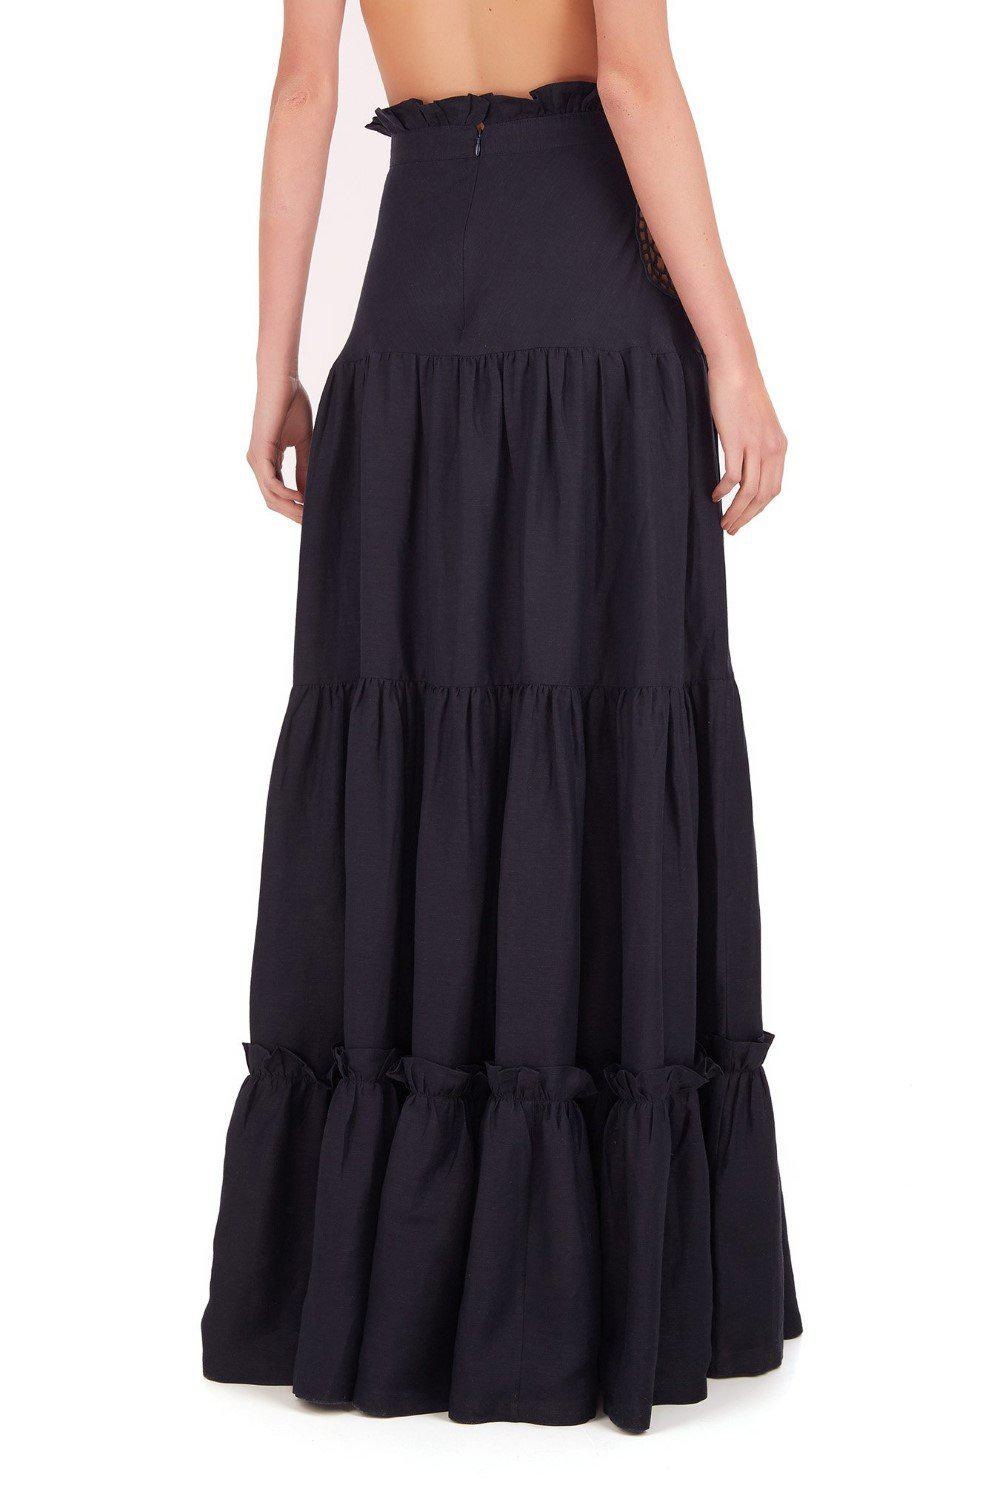 Marine Long Skirt With Seashell Embroidery 1